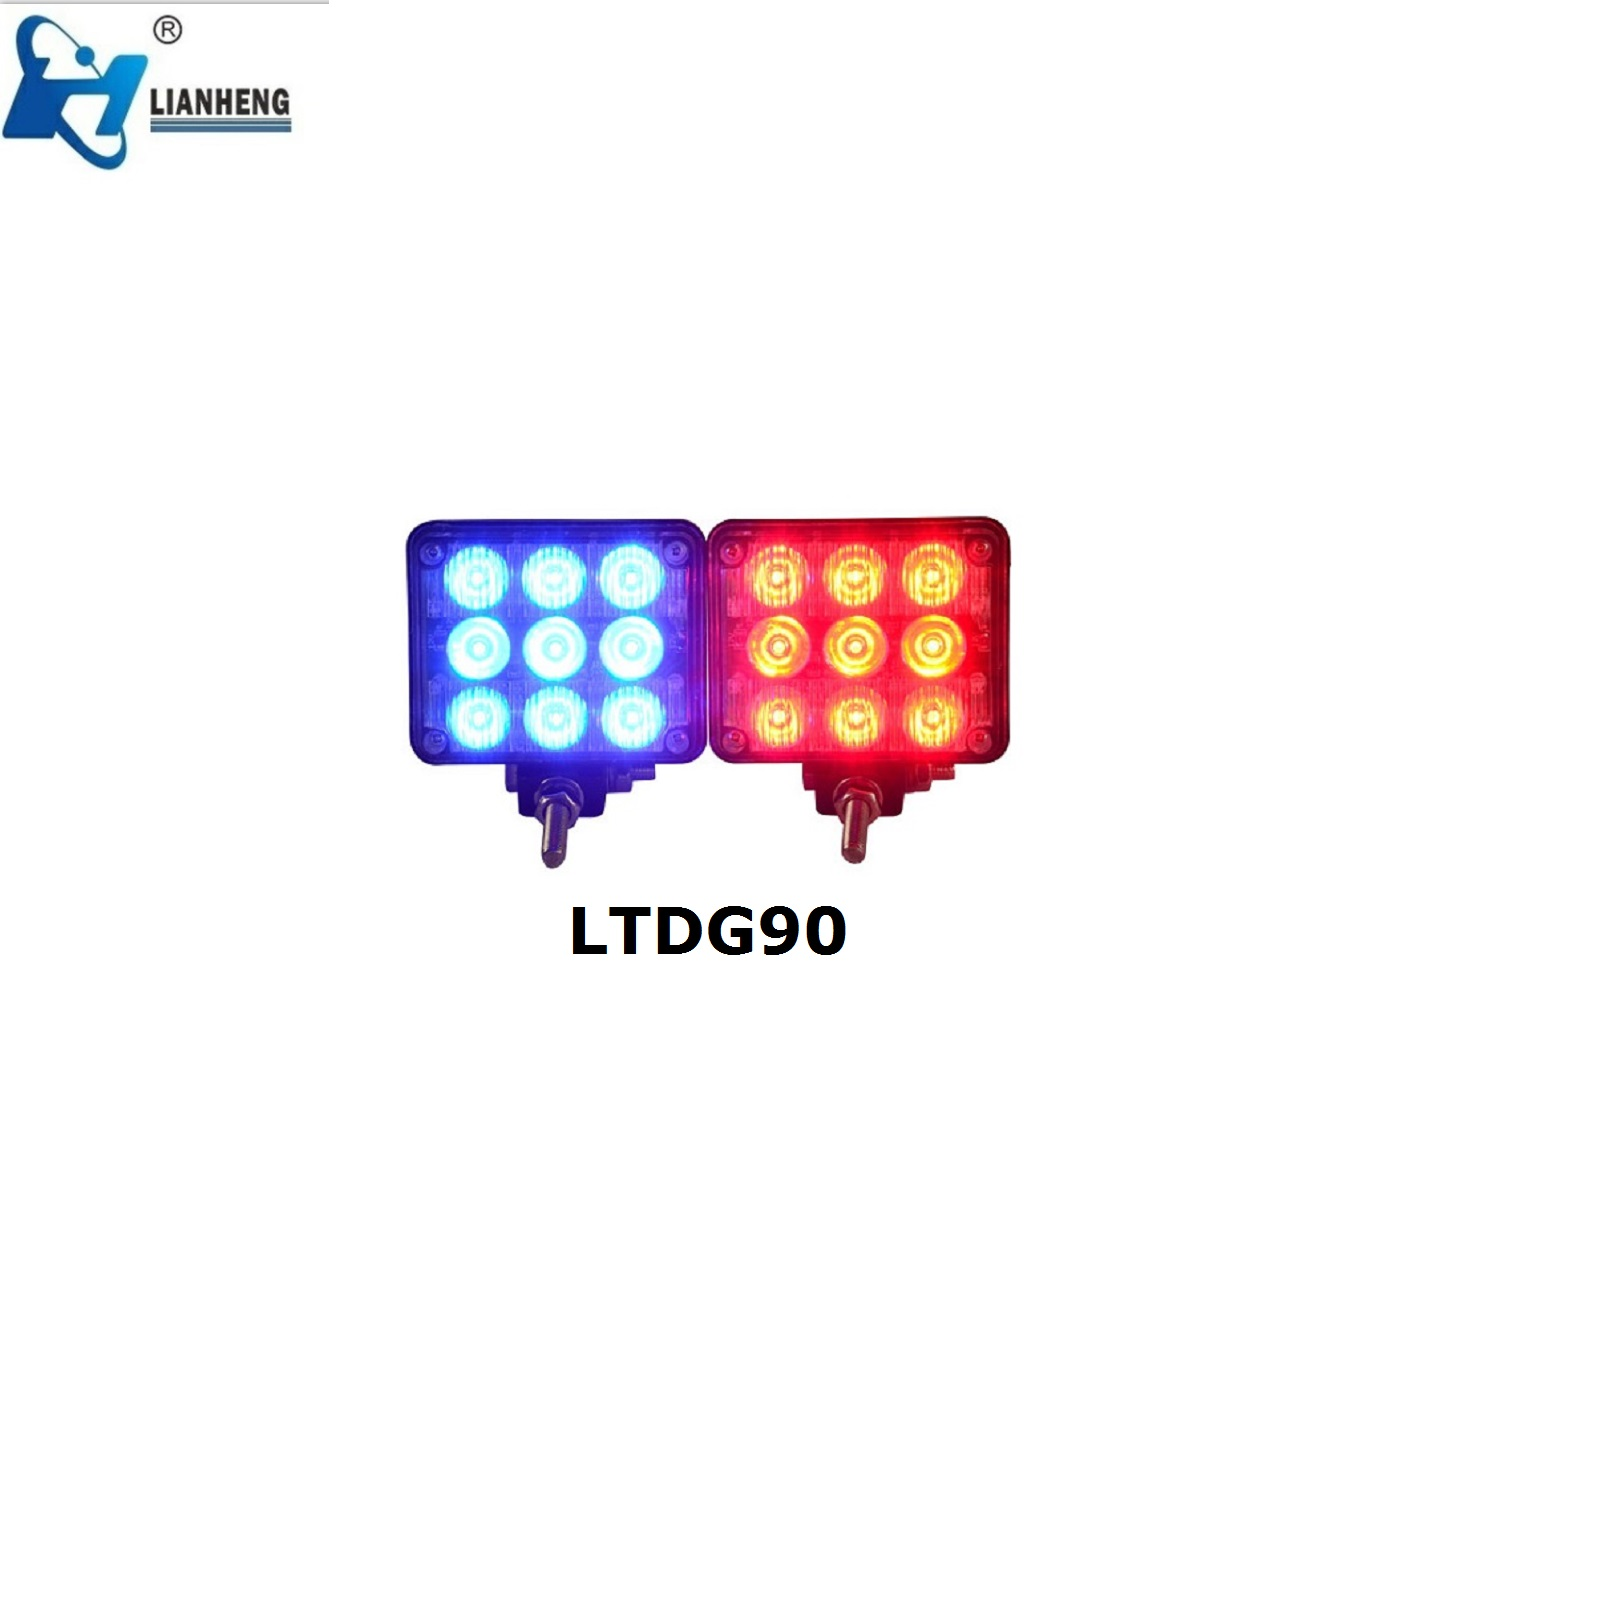 LED warning lights for police vehicle fire truck and motorcycle